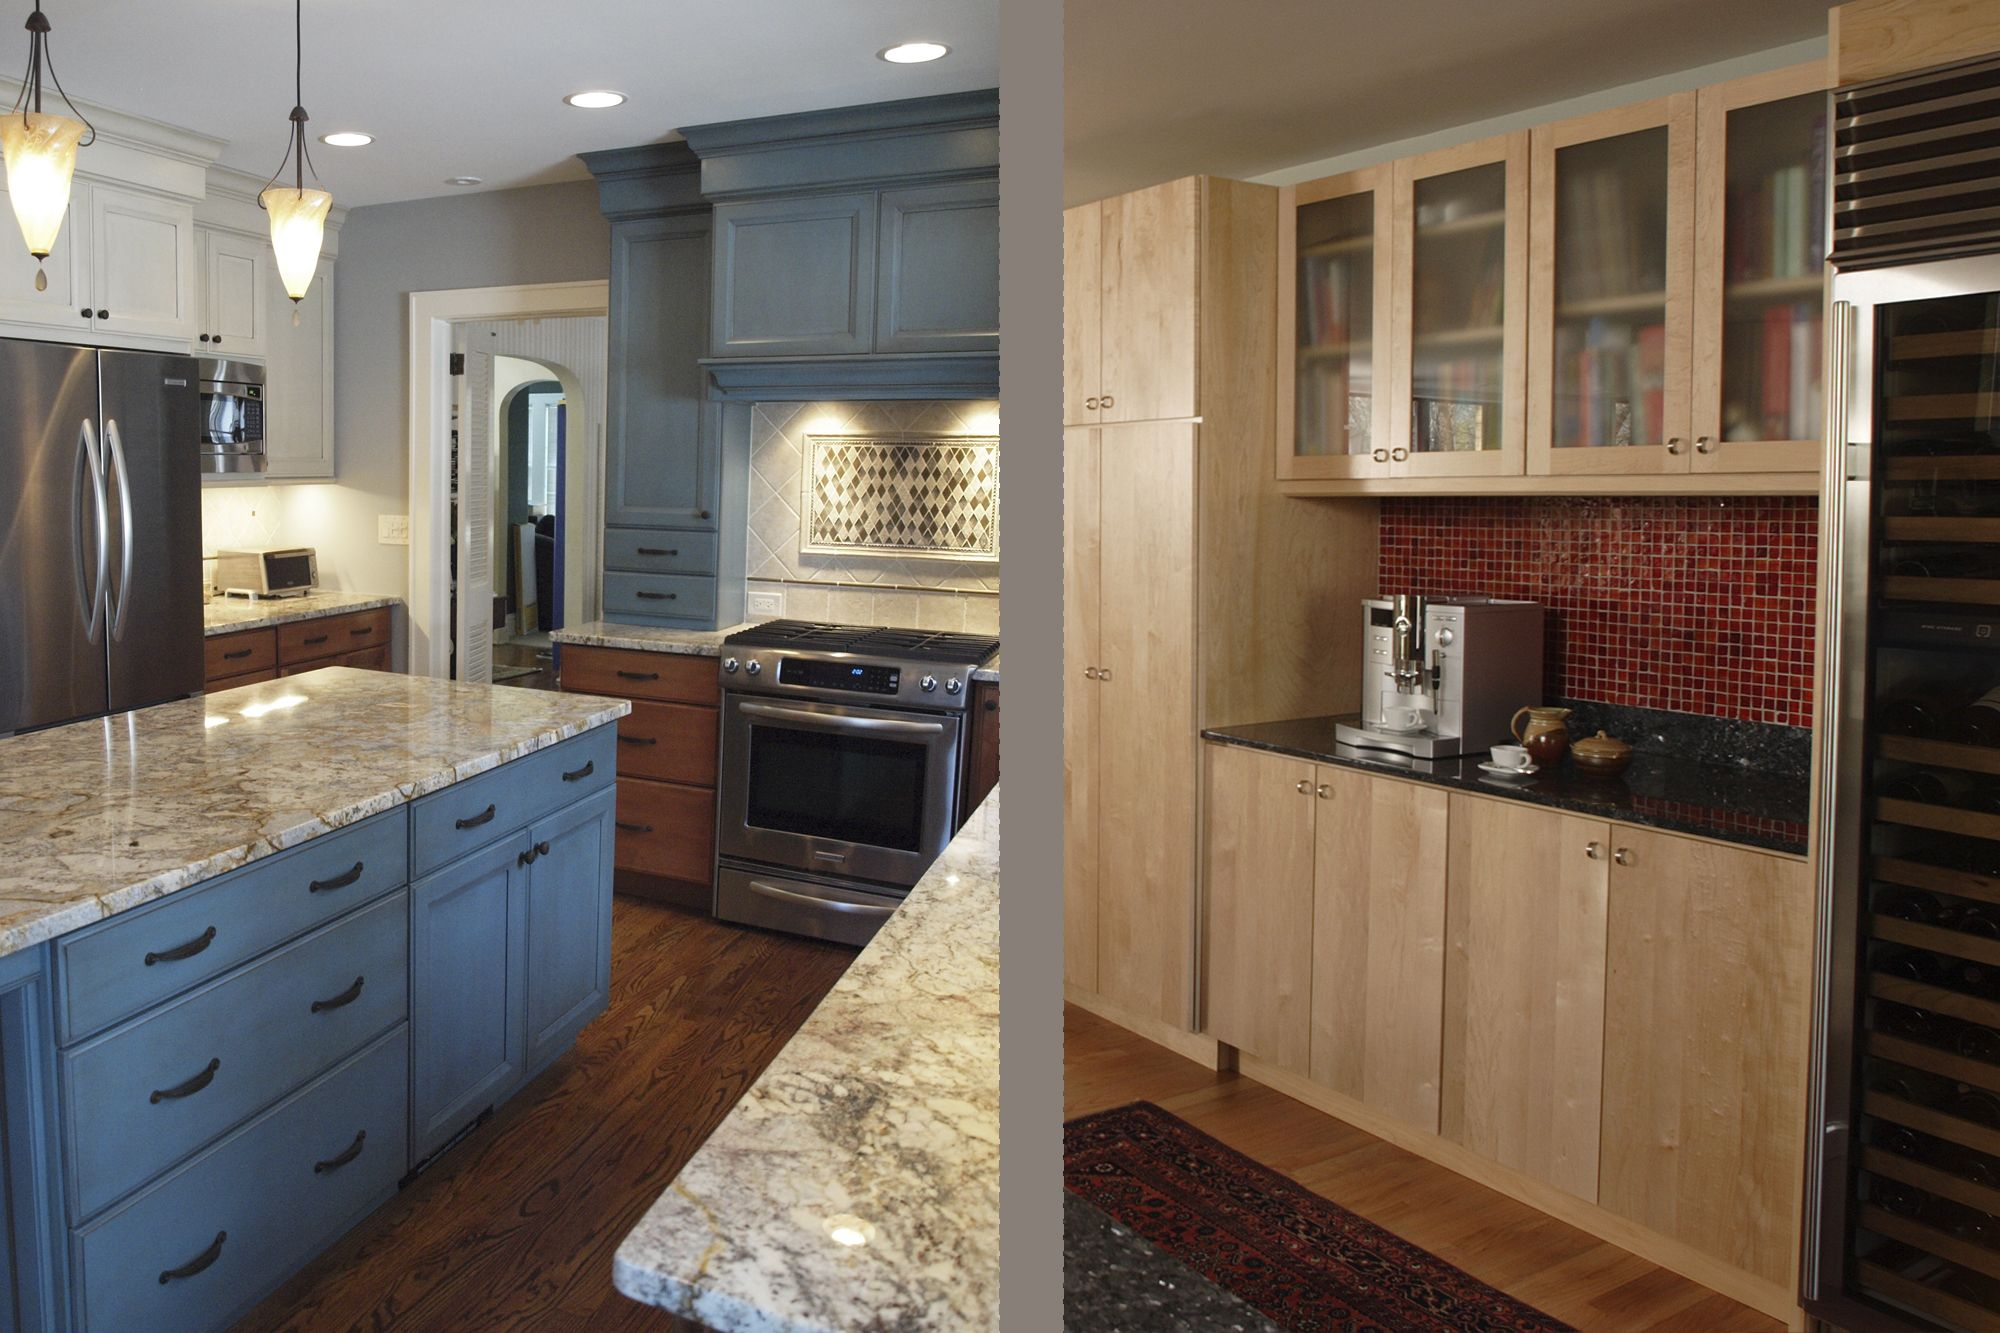 Marvellous Ideas Furniture Interesting Remodeling Kitchen Decors After And Before Added Blue Cabinets Blue Kitchen Cabinets White Kitchen Design Kitchen Design